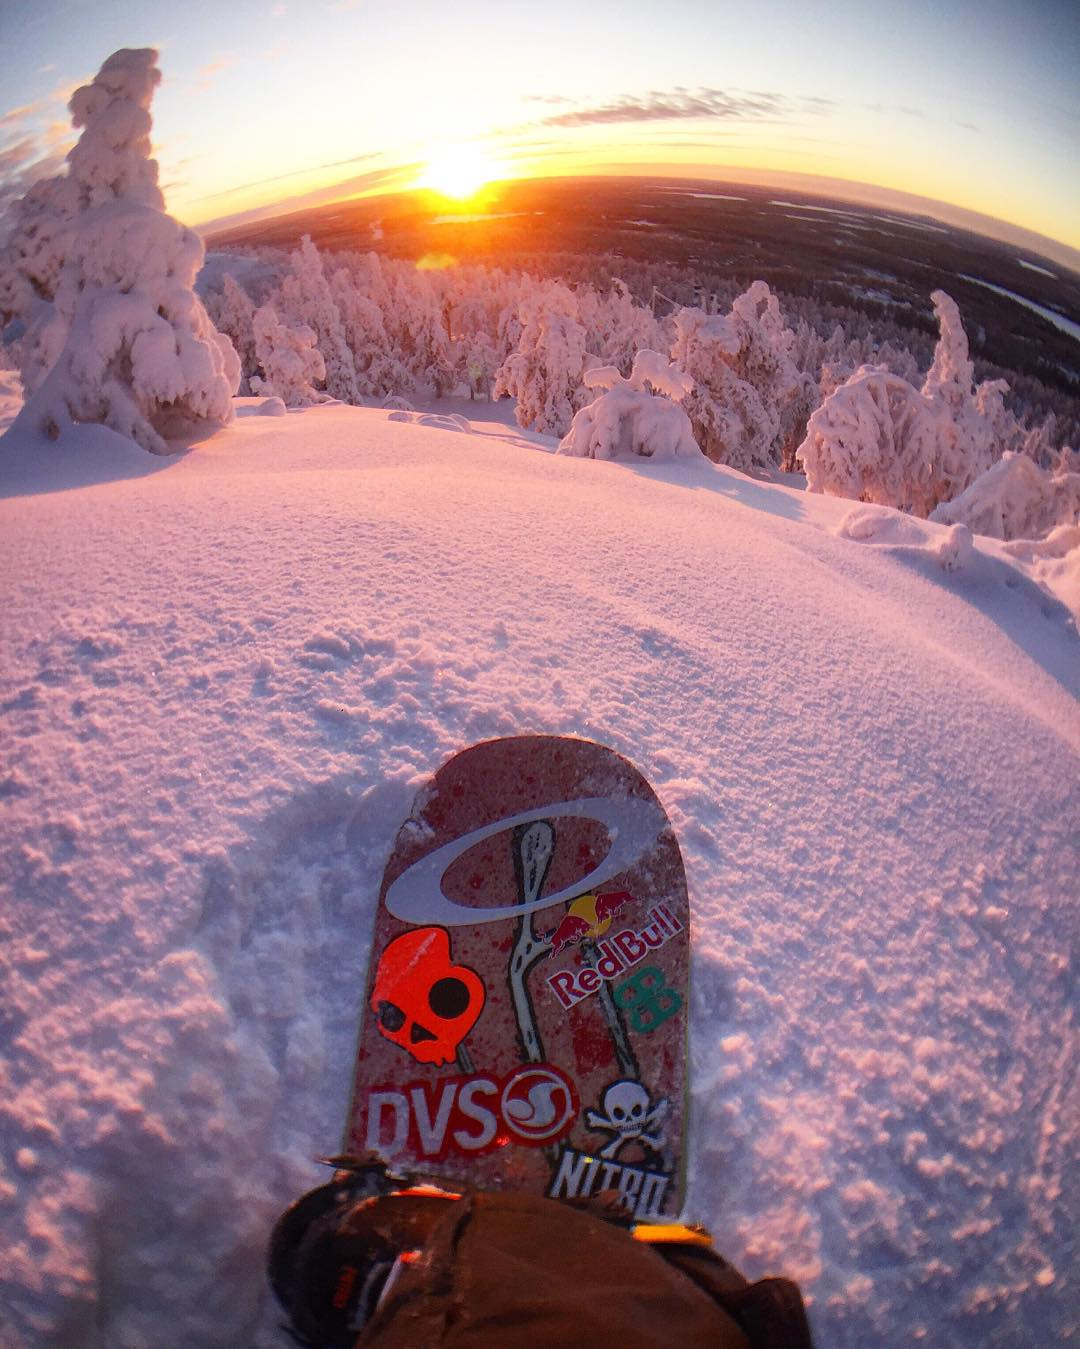 Untouched perfection.  @eeroettala with a view any snowboarder or skier would crave.